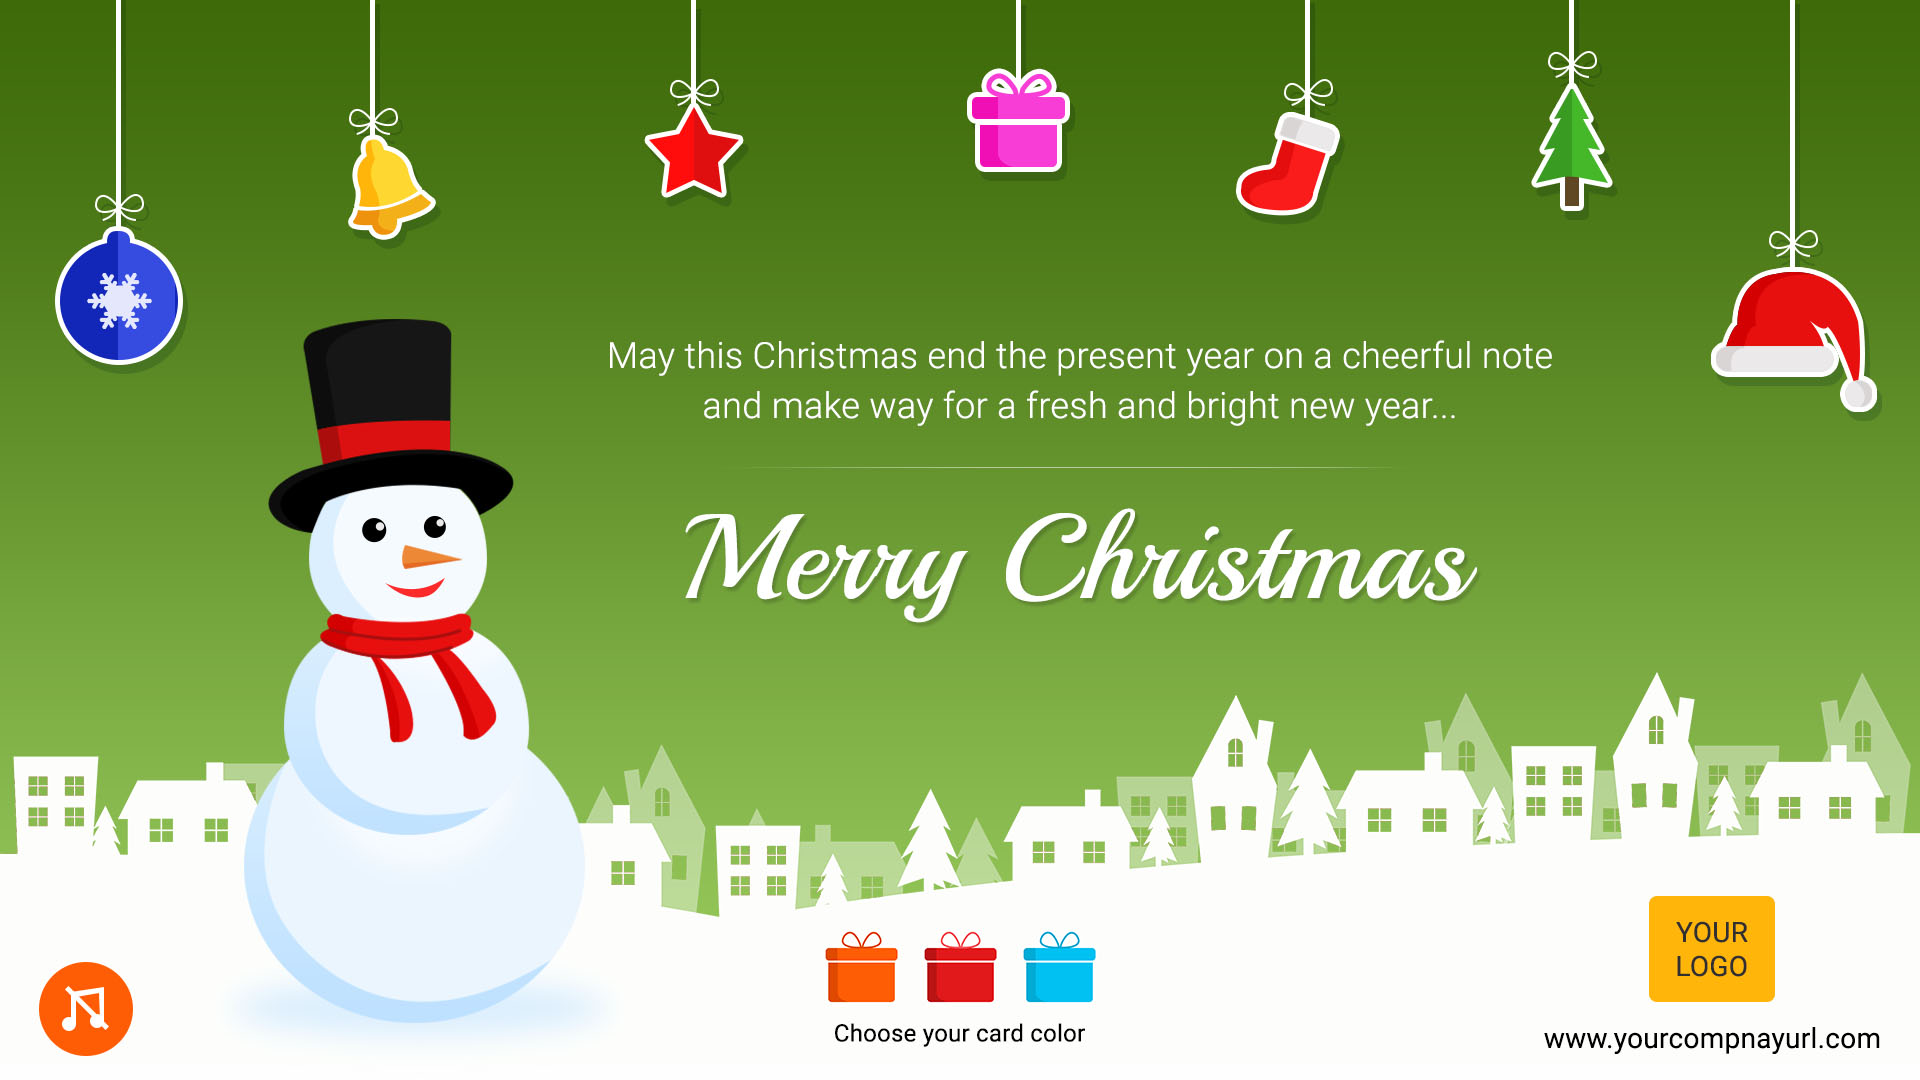 Christmas Greeting Card 3 Color Variations By Themesloud Codecanyon